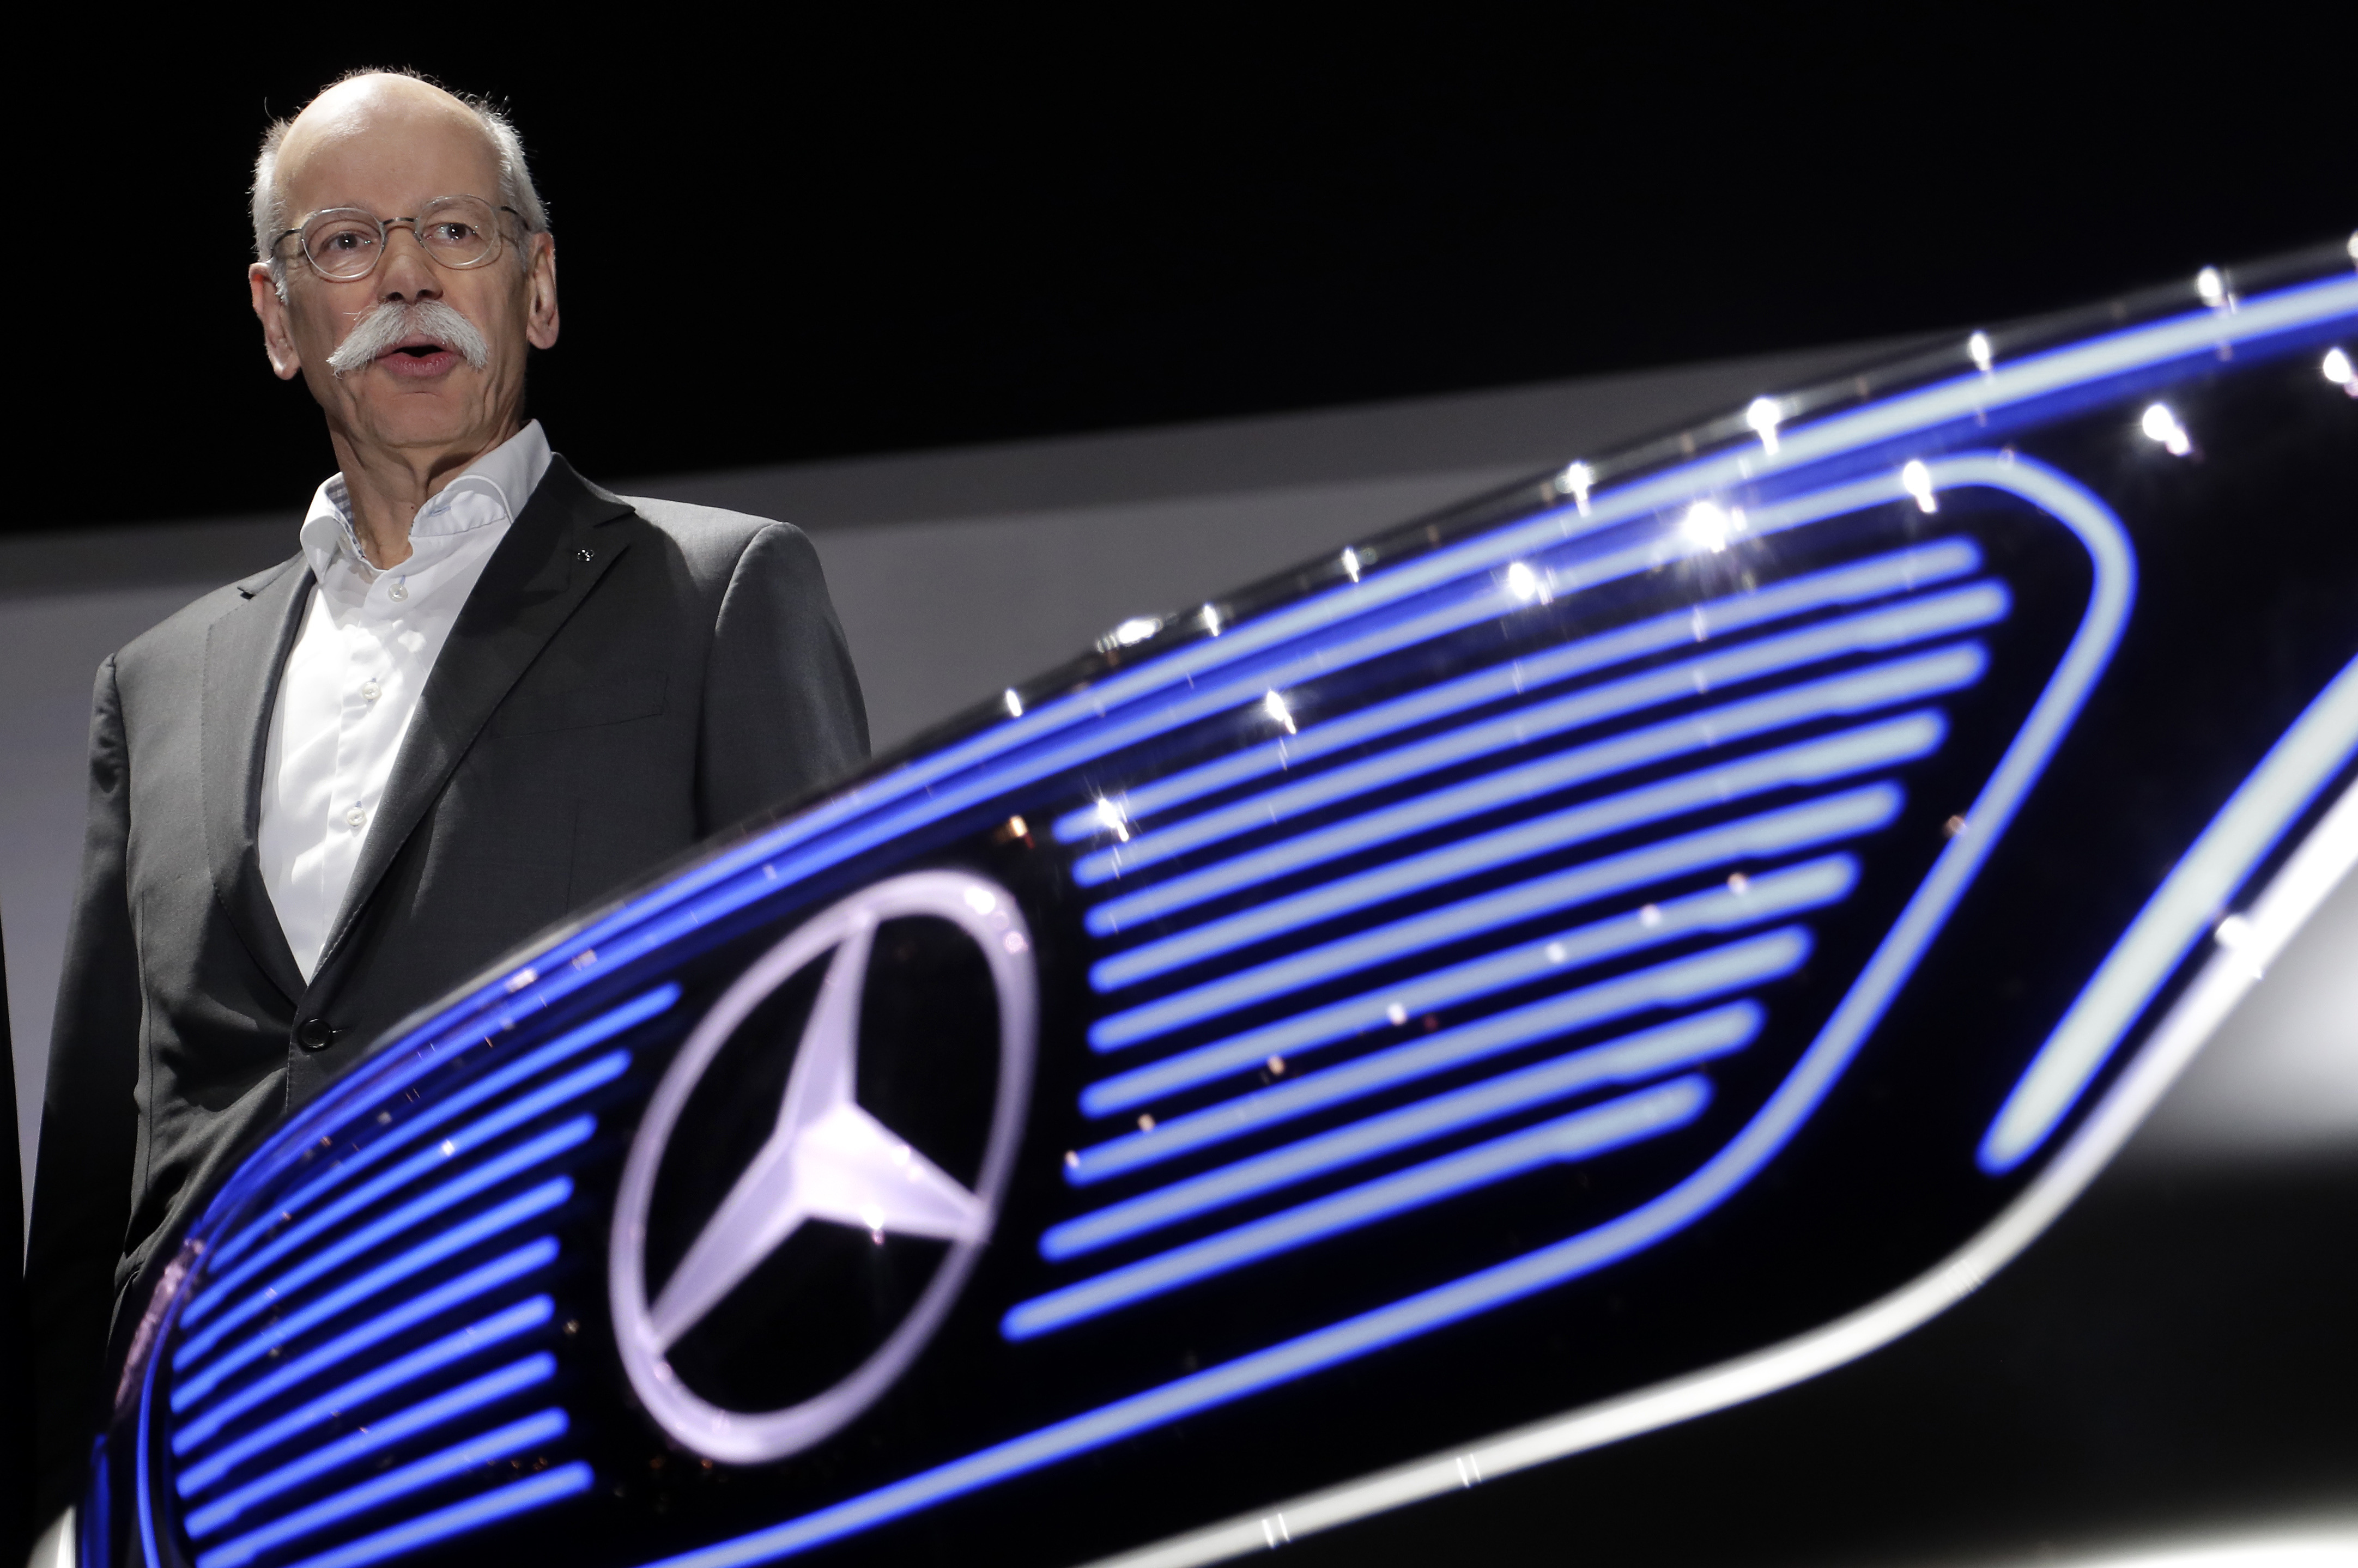 Dieter Zetsche, CEO of the Daimler AG, poses next to a car prior to the shareholders meeting of the car maker in Berlin, Germany, Wednesday, March 29, 2017.